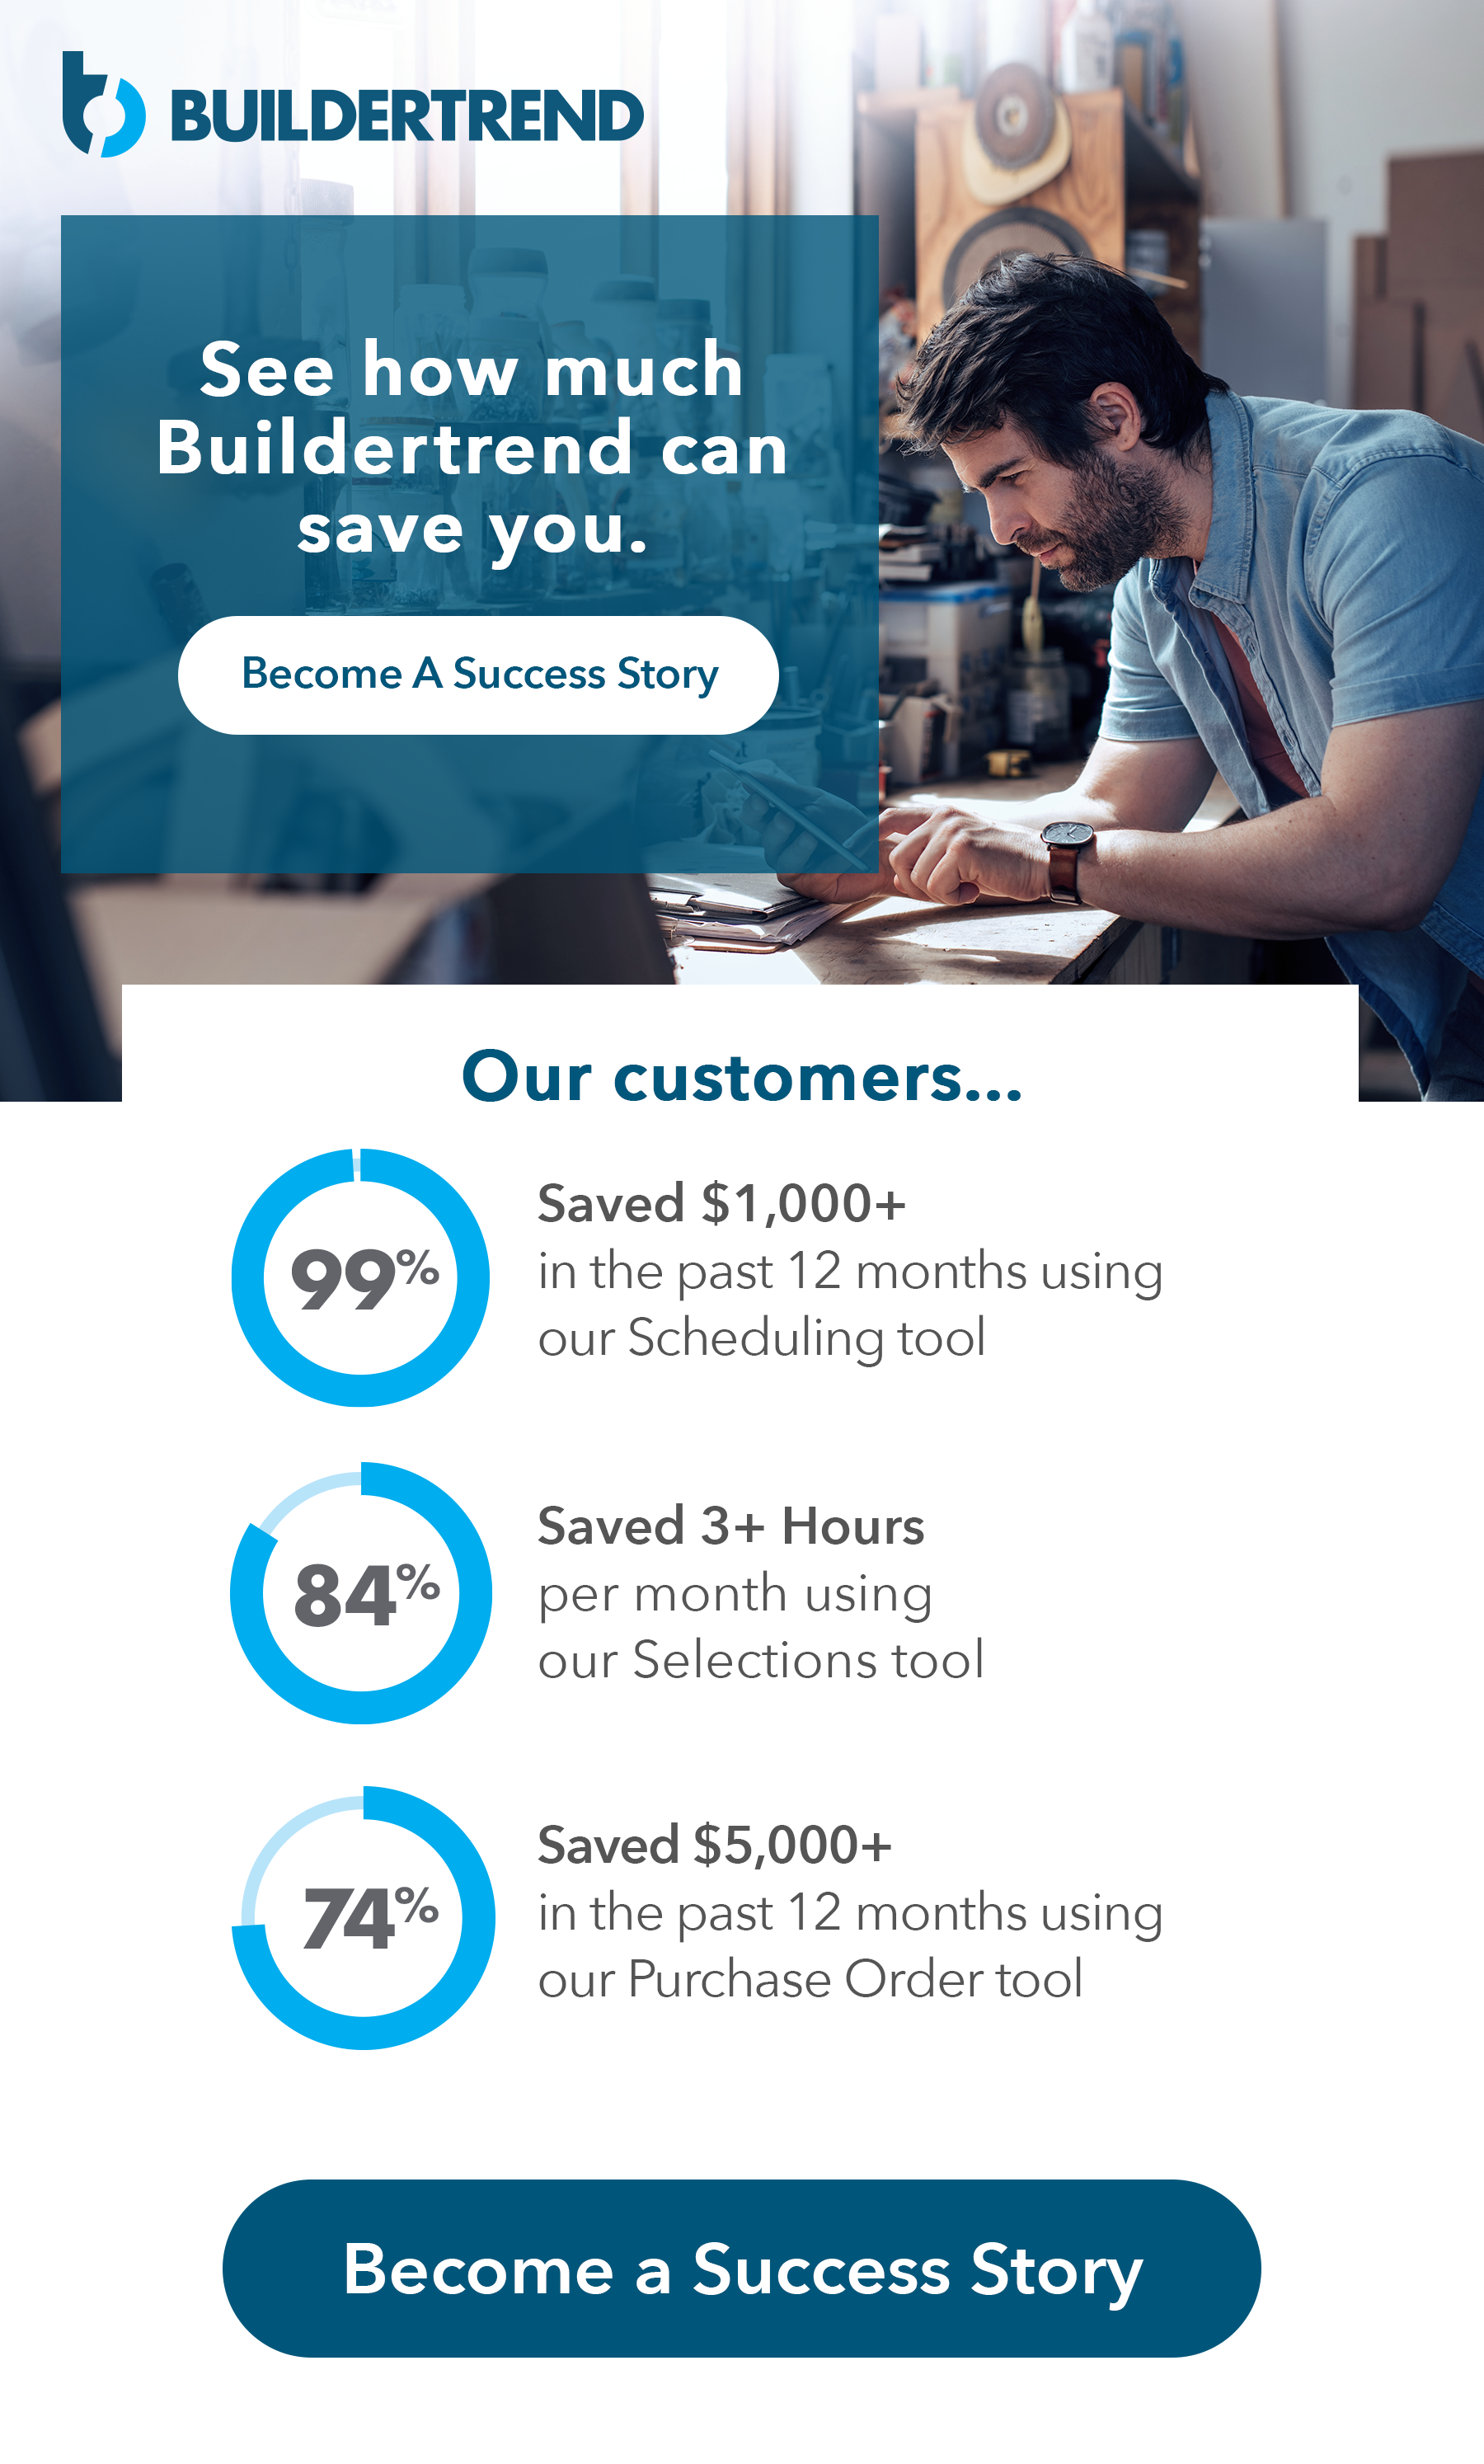 see how valuable buildertrend is for your business - become a success story